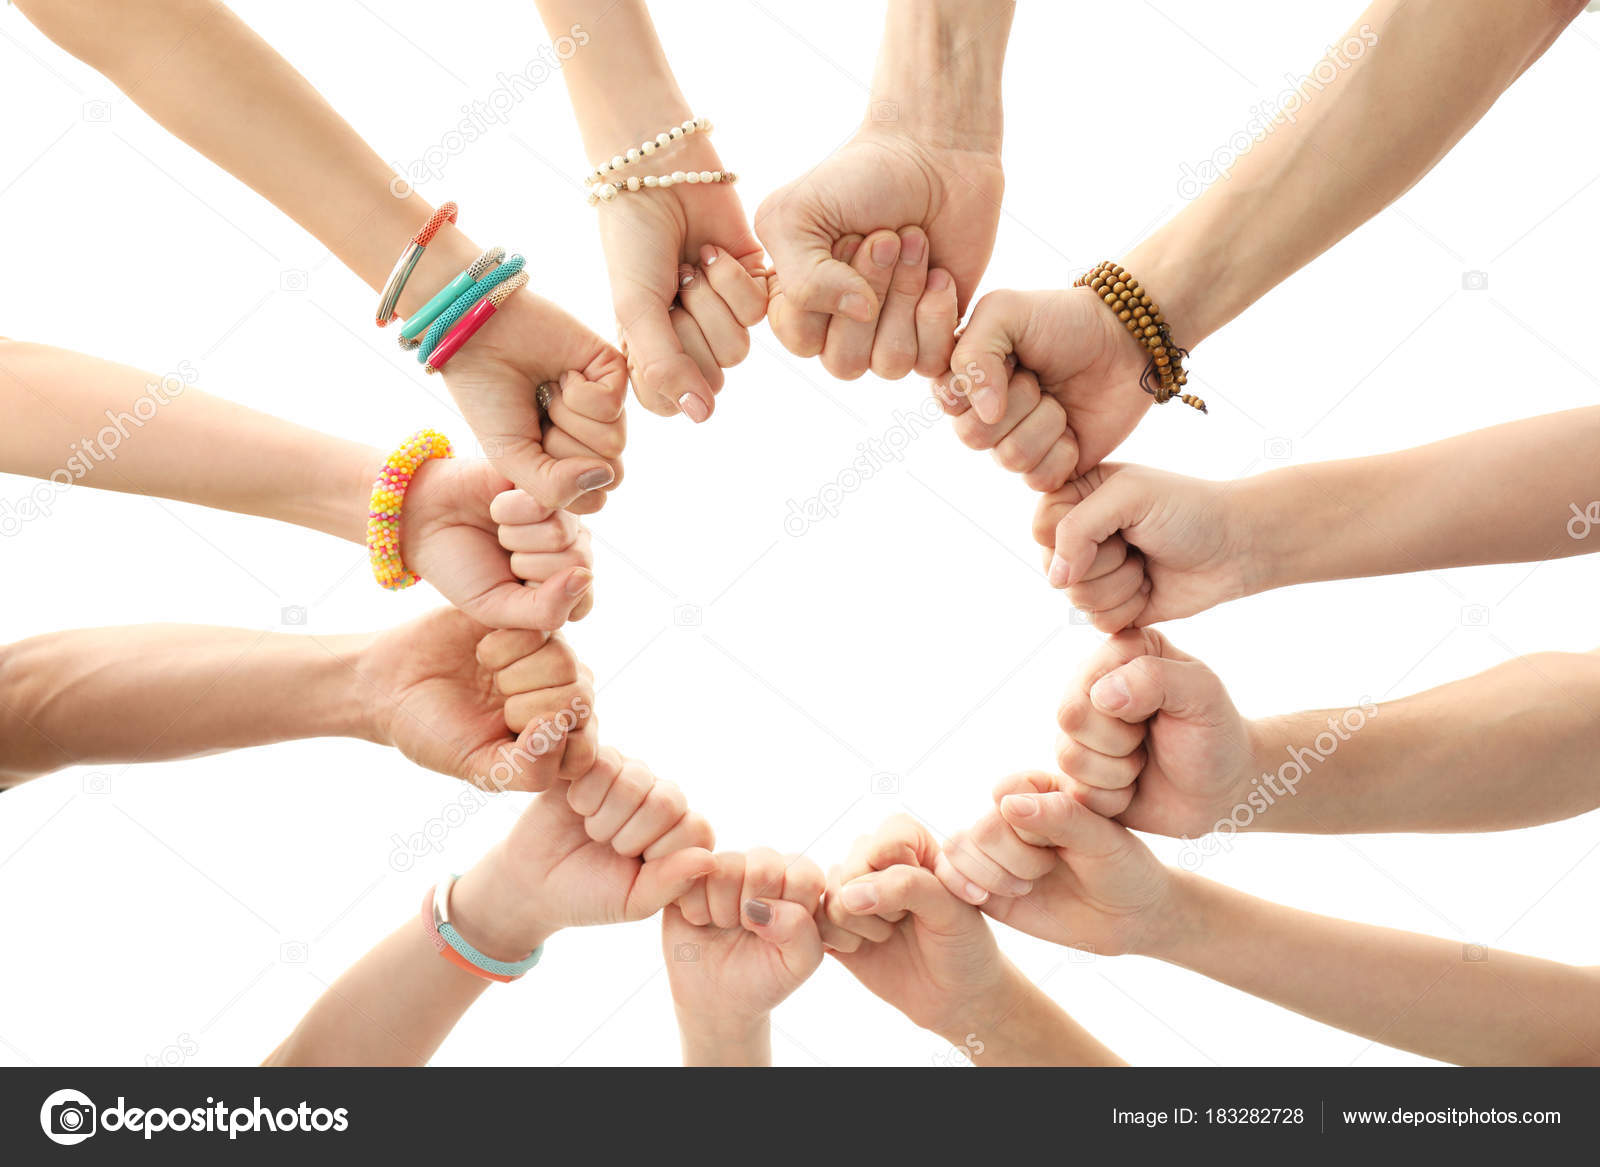 People Putting Hands Together As Symbol Of Unity Stock Photo C Belchonock 183282728